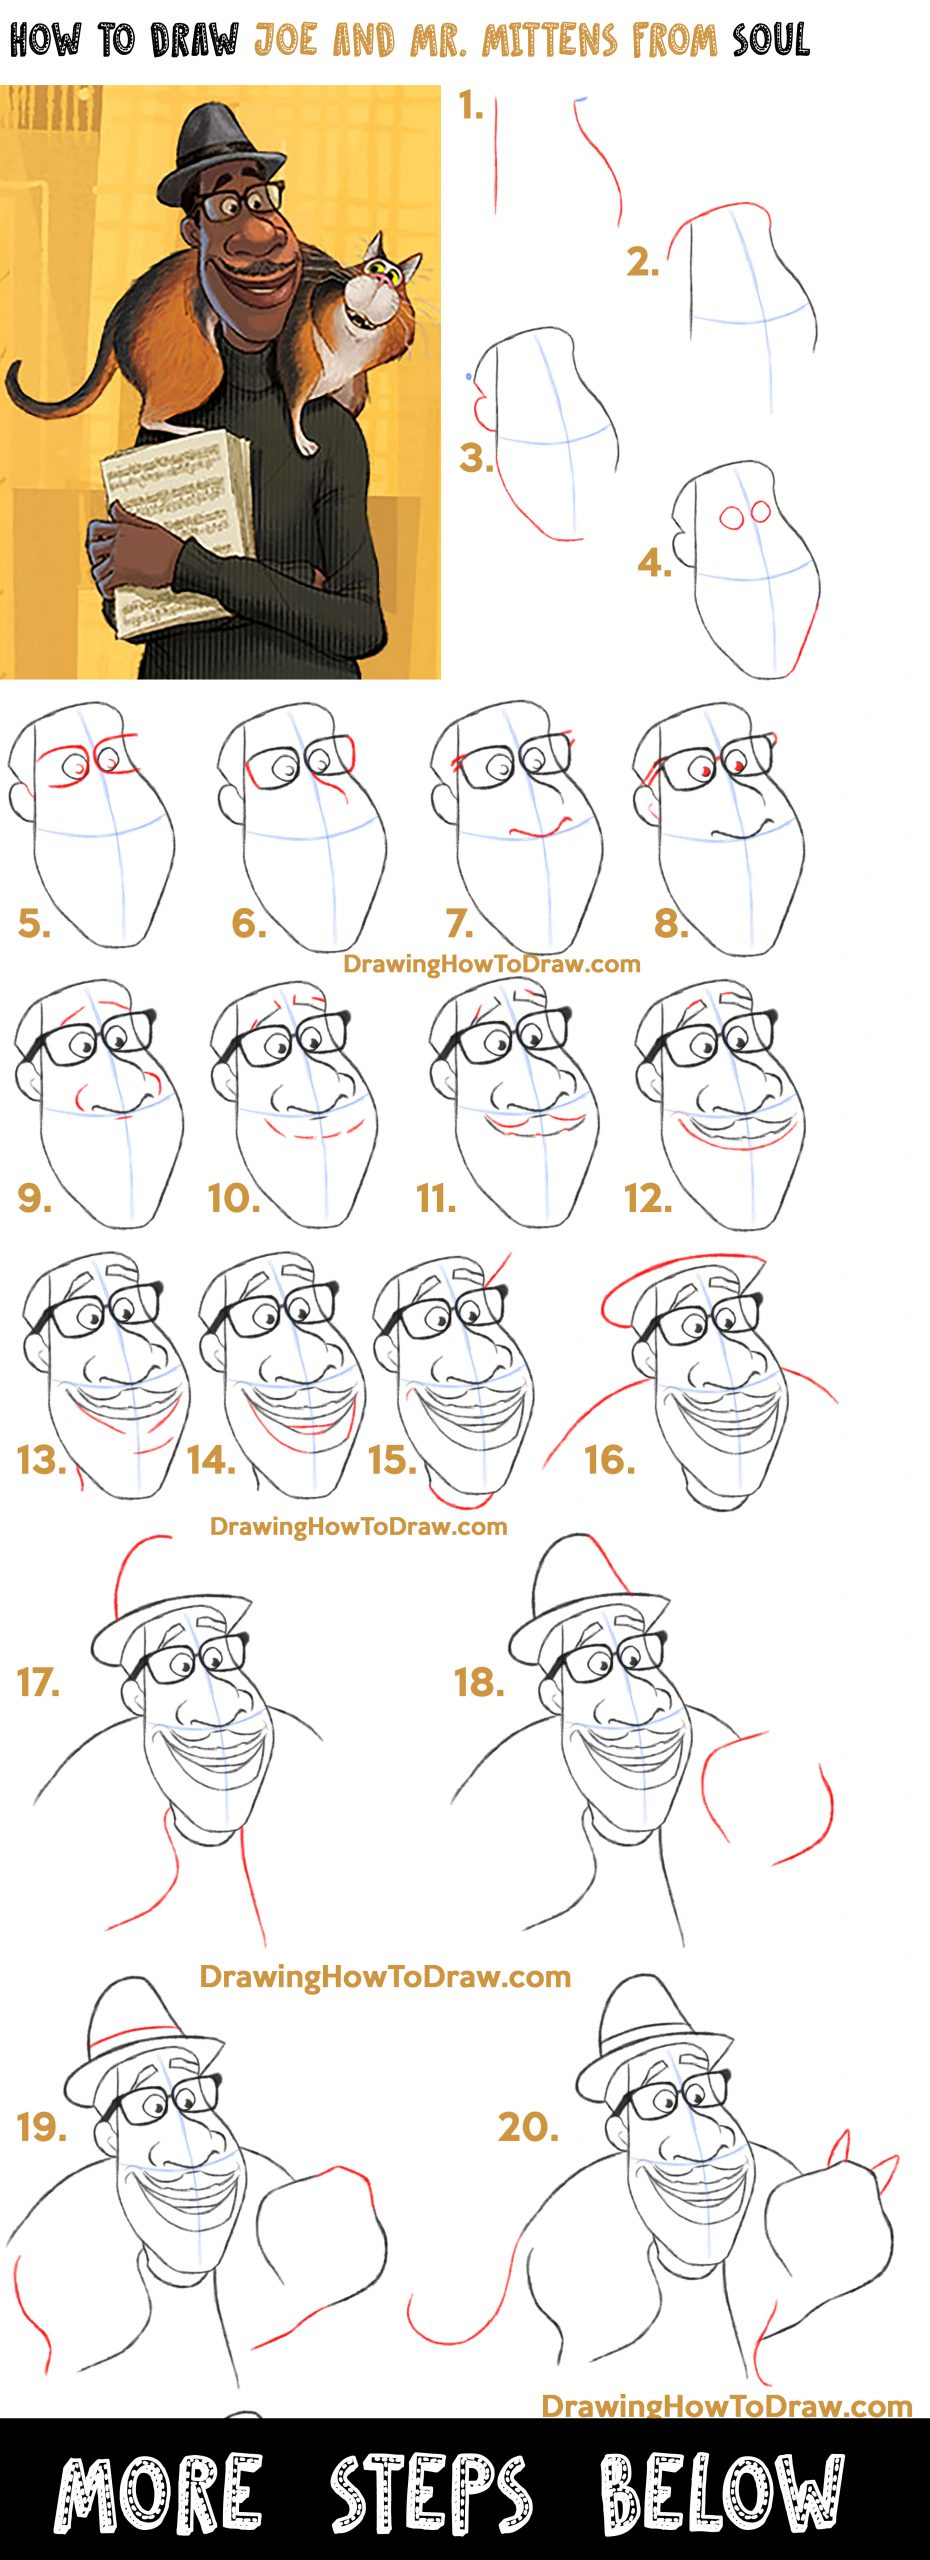 Learn How to Draw Joe Gardner and Mr. Mittens the Cat from Pixar's Soul Easy Step by Step Drawing Tutorial